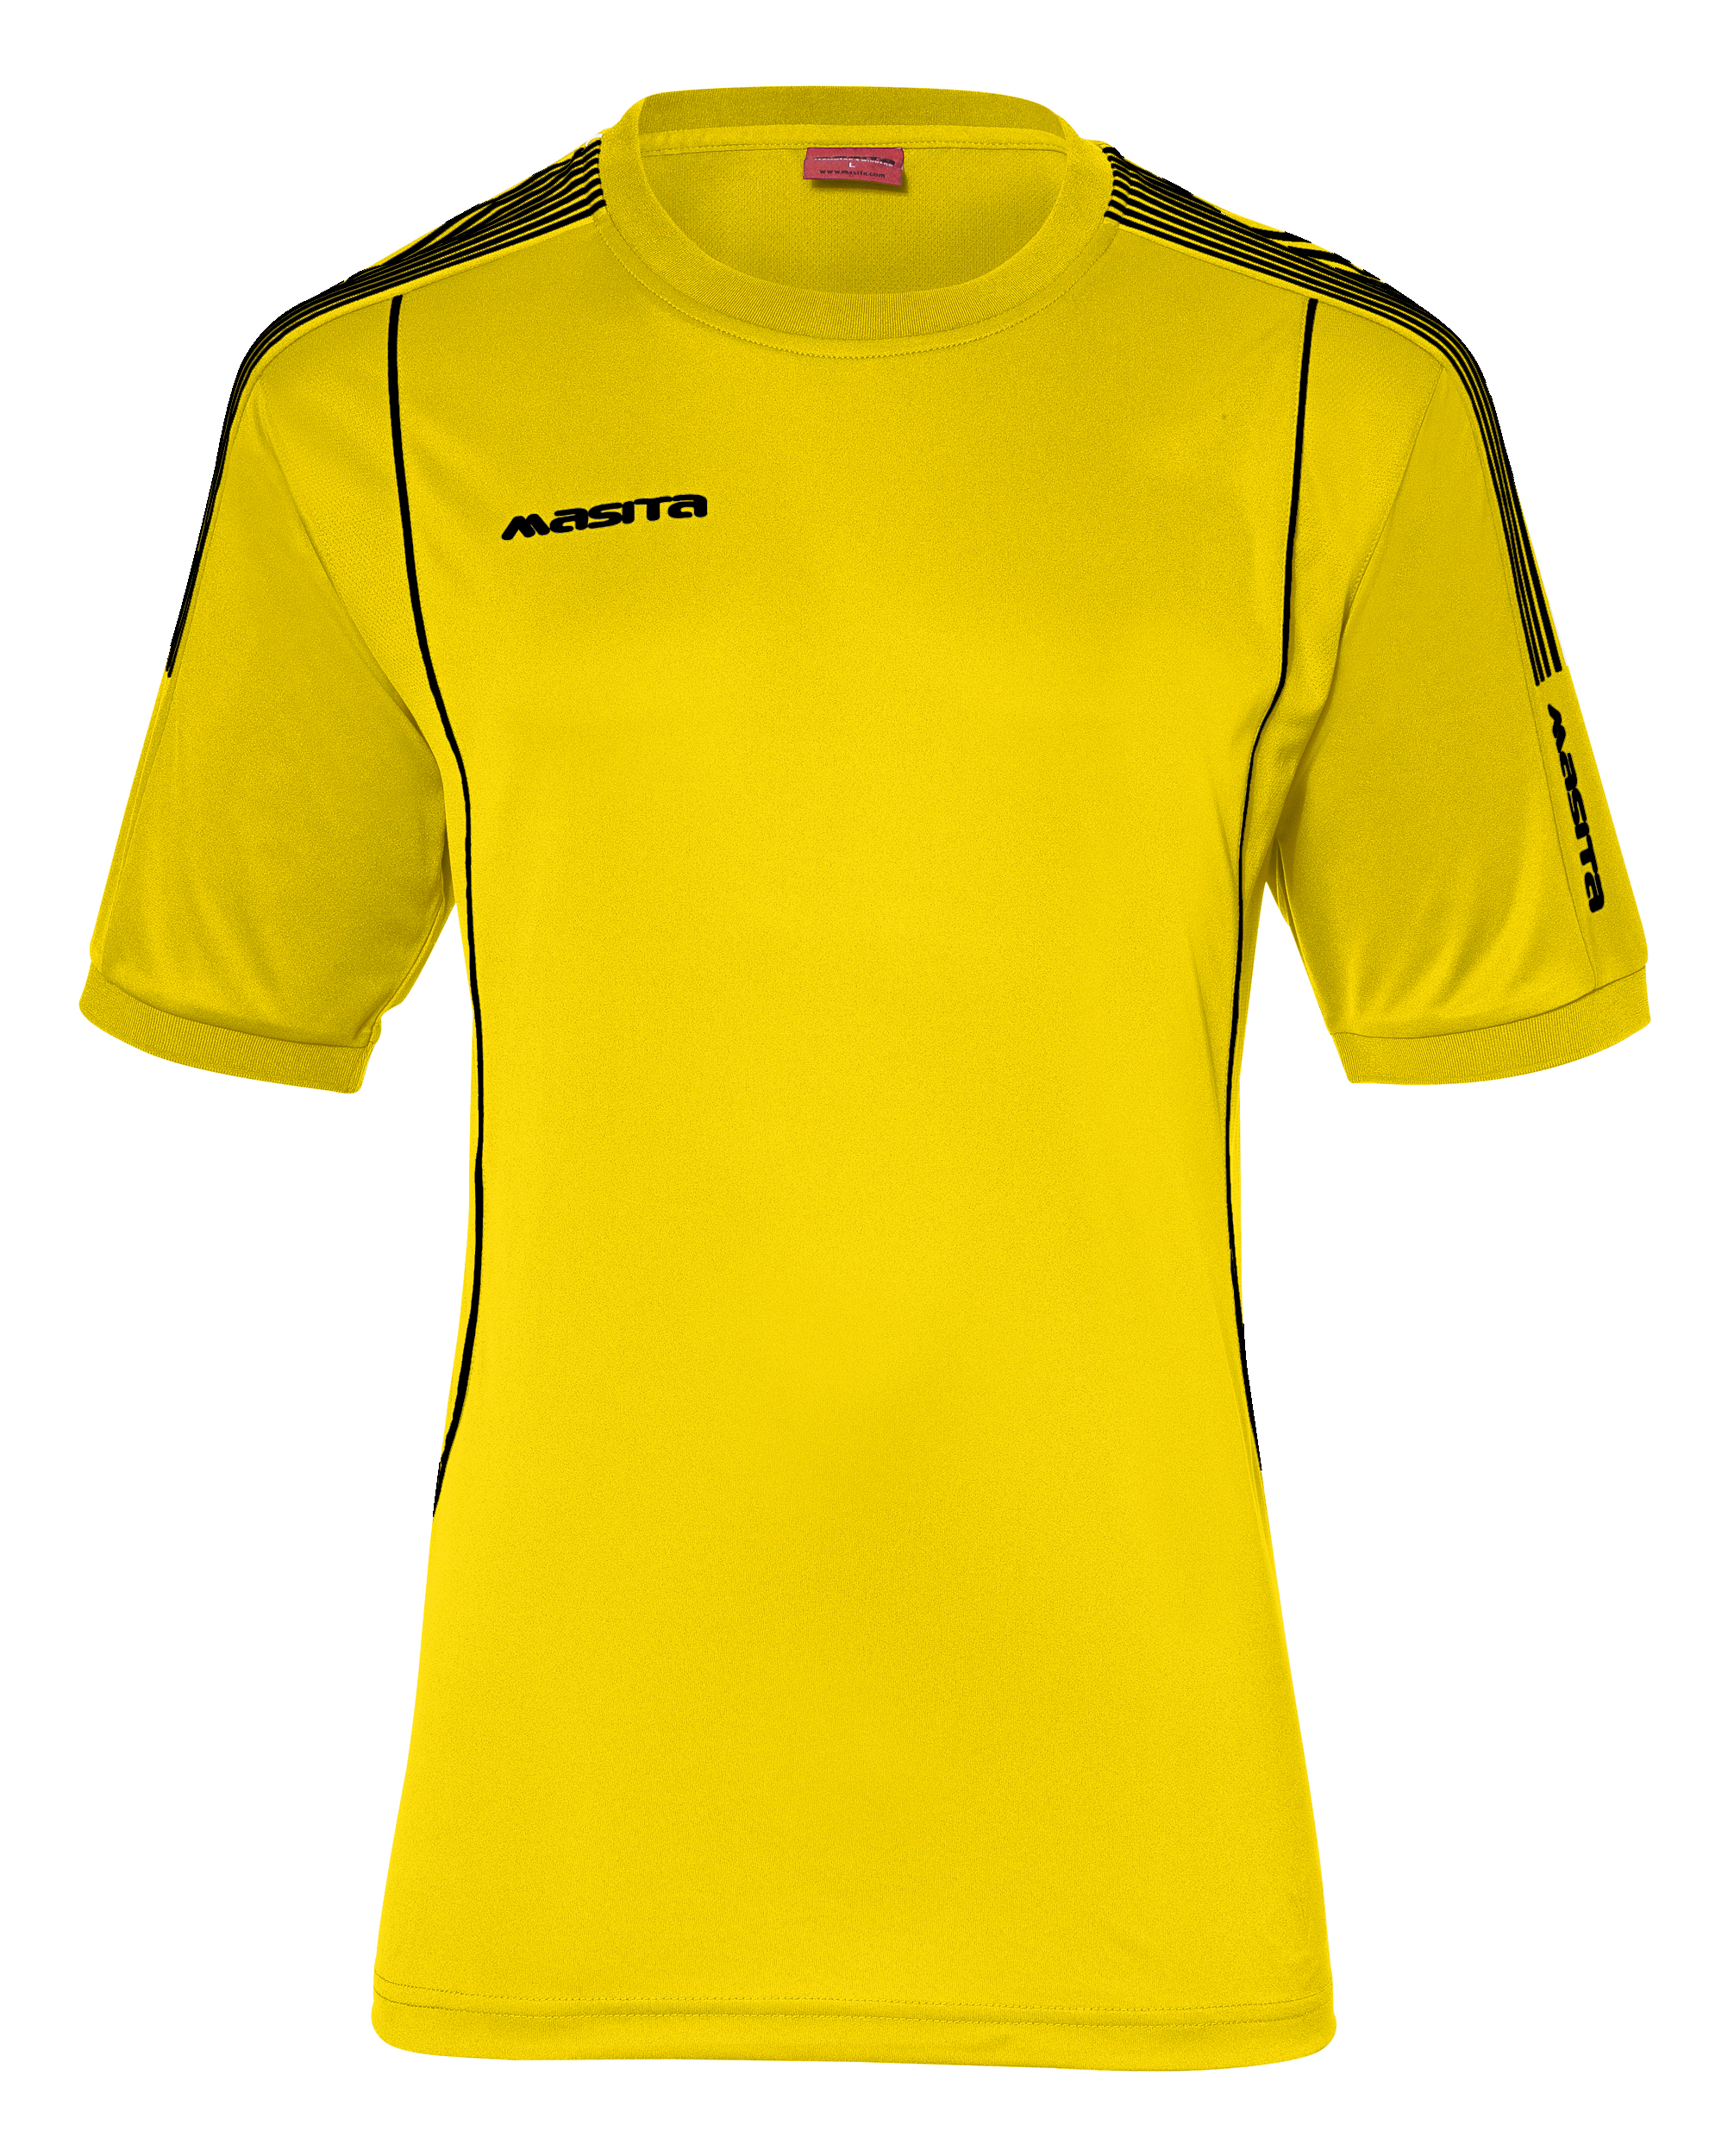 T-Shirt Barca  Yellow / Black